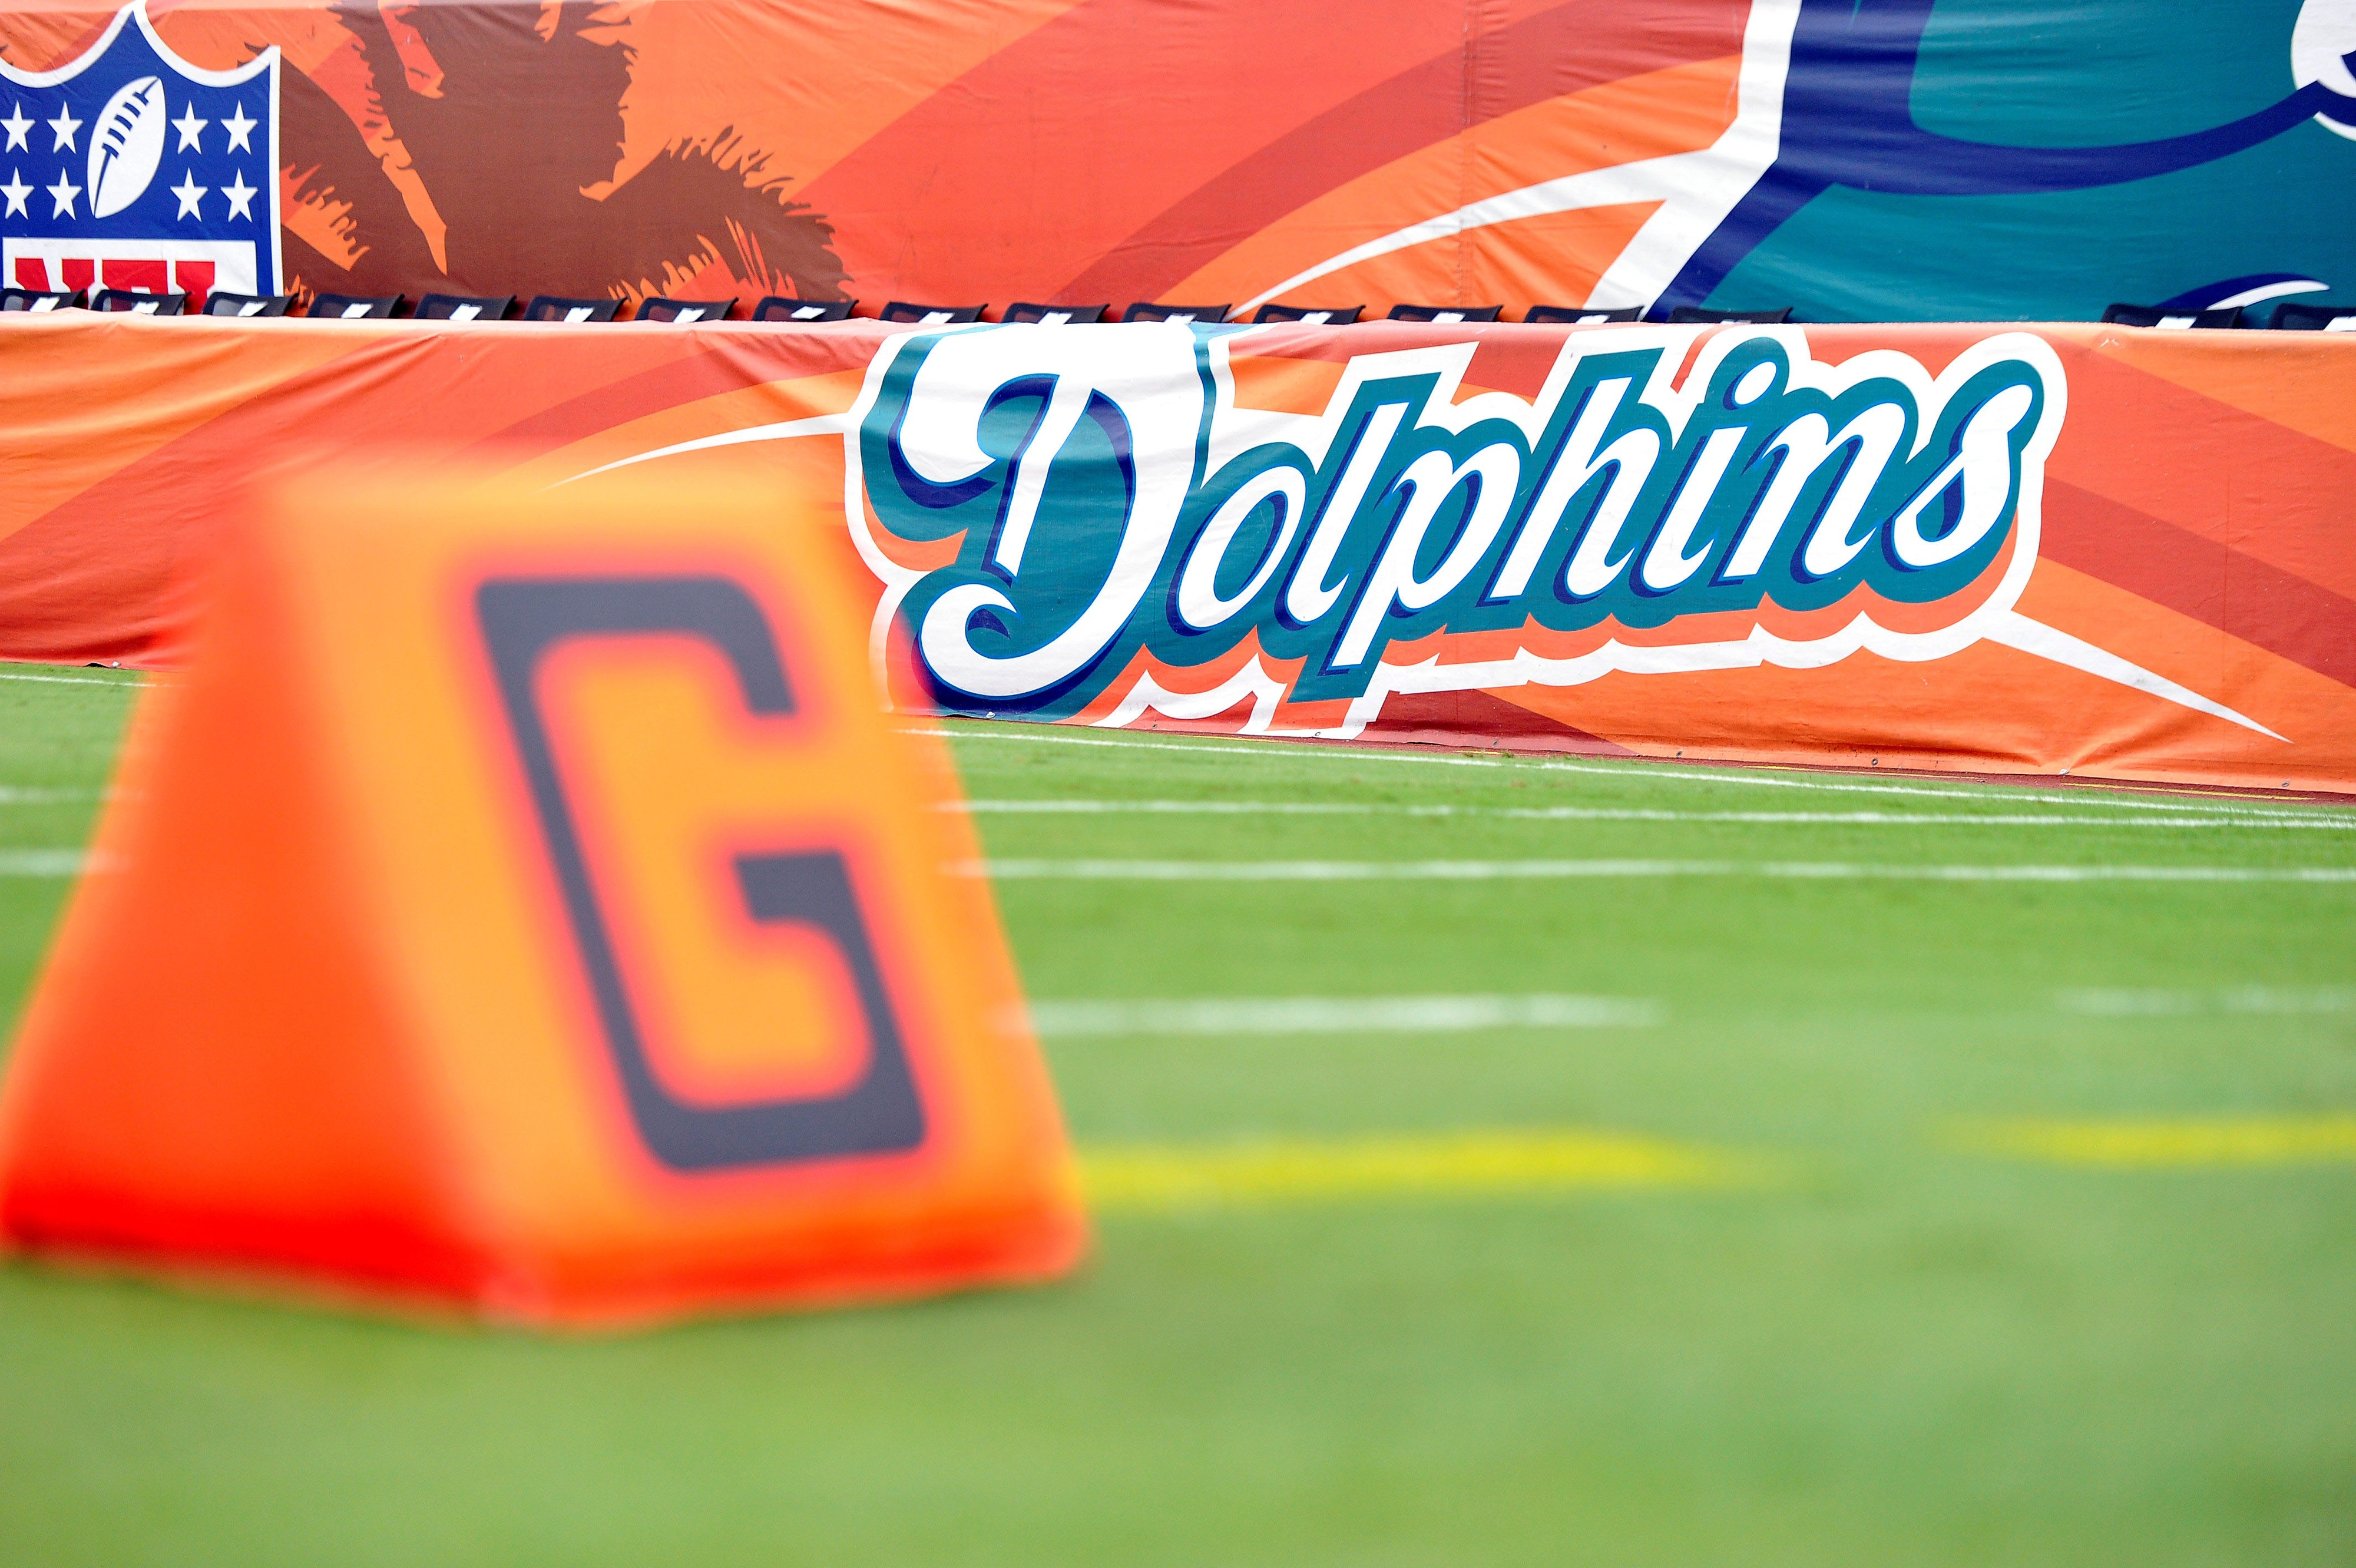 Dolphins new logo: Miami's new look confirmed